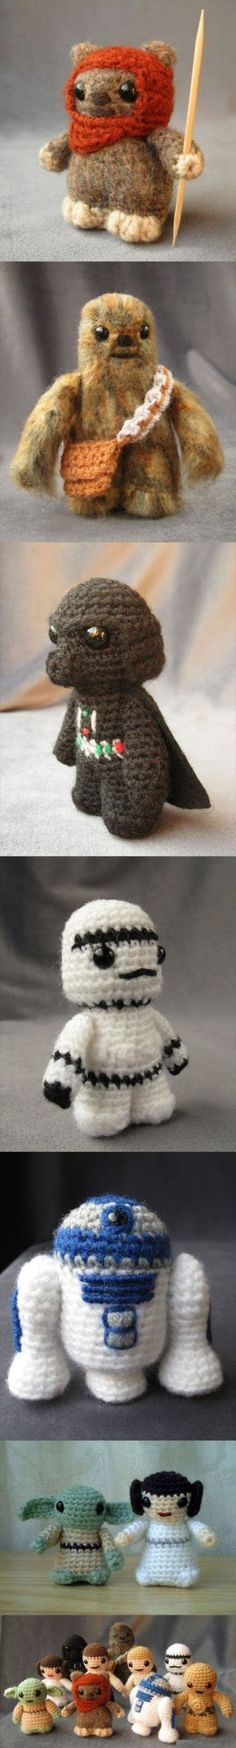 Just when I have one basic stitch down pat, & no tear aways....I find something so cute!!  LOL!!!